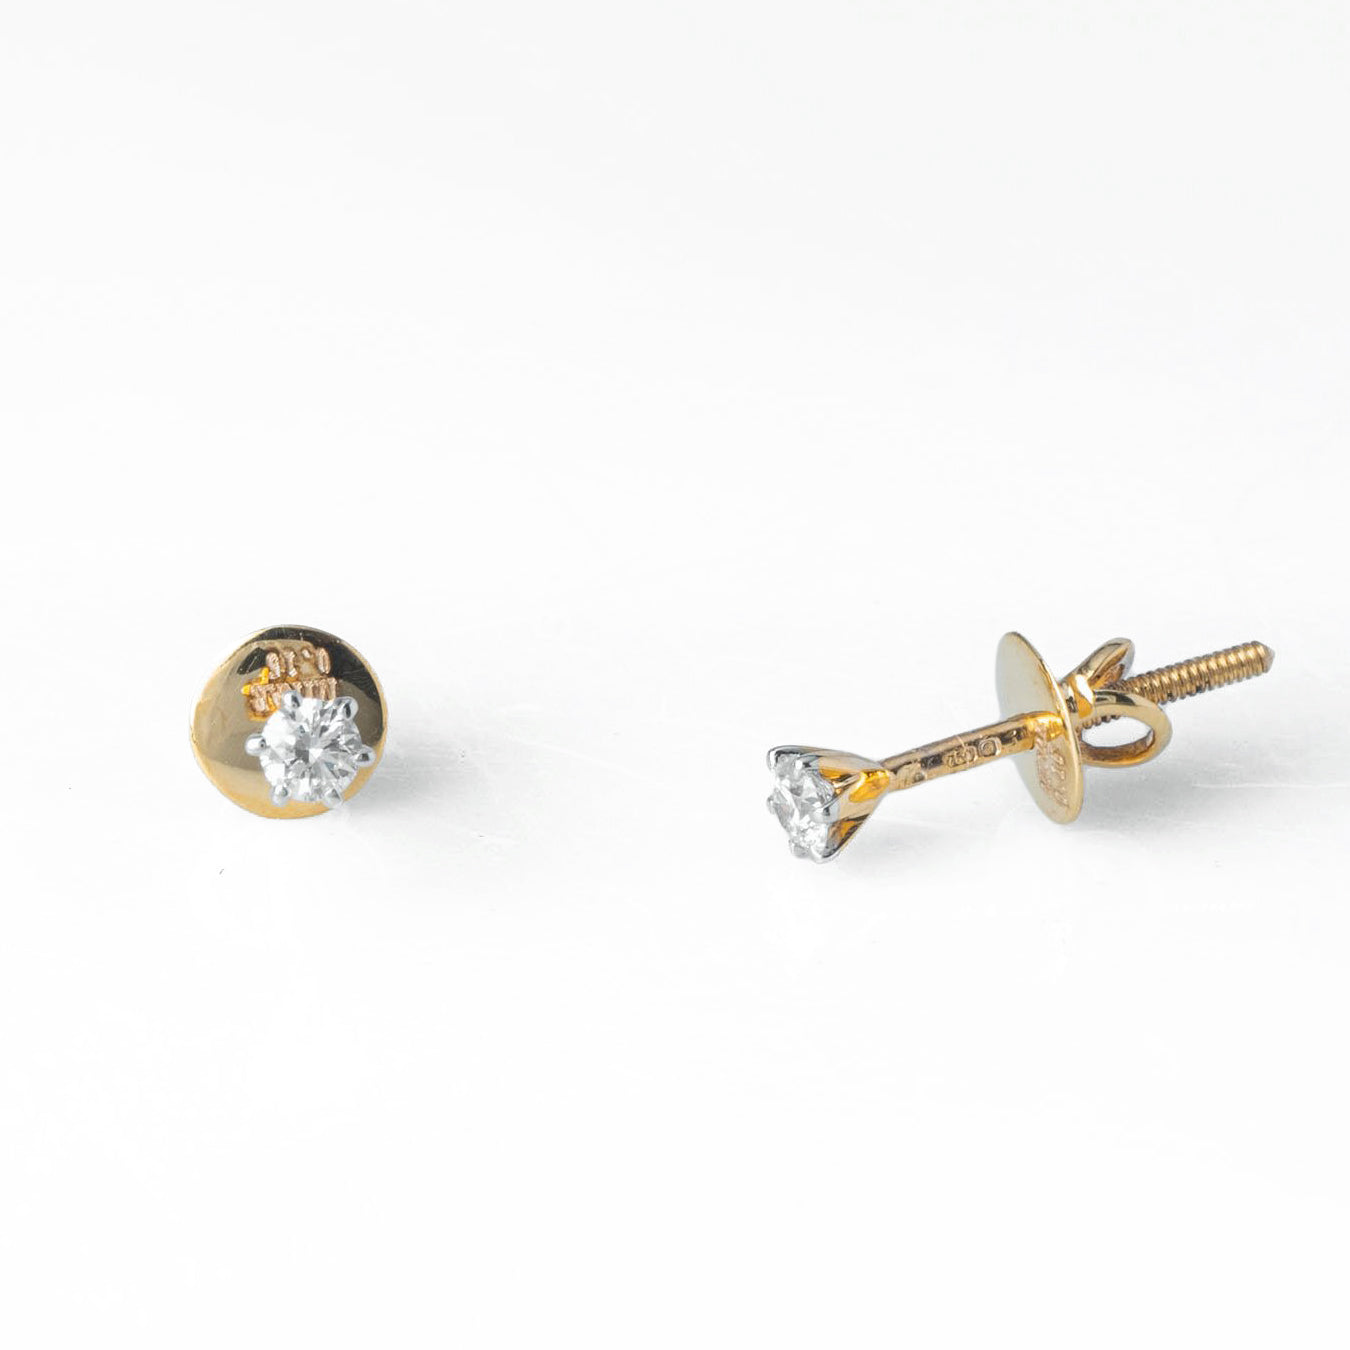 18ct Yellow Gold 0.10ct Round Brilliant Cut Diamond Stud Earrings (MCS3690)